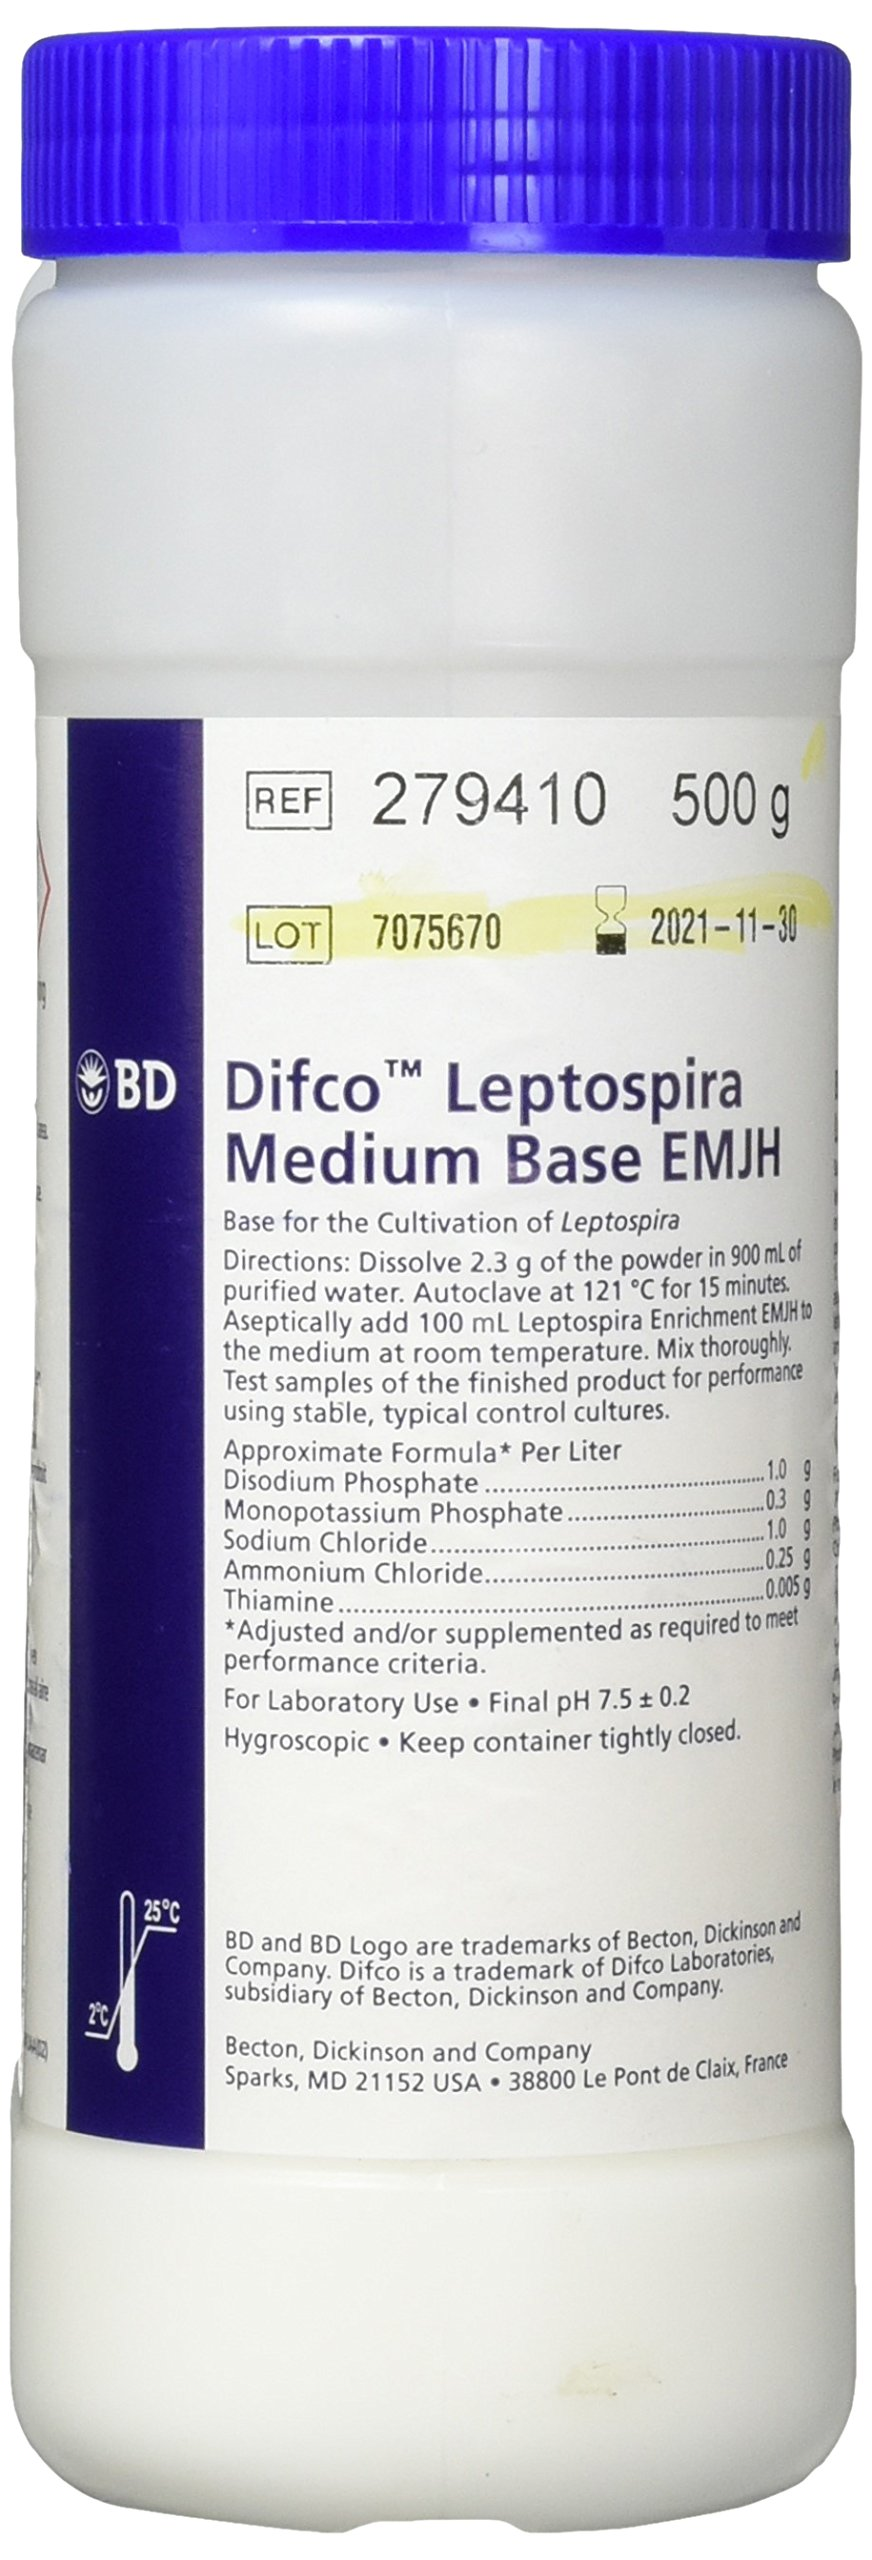 BD Diagnostic 279410 Difco Leptospira Medium Base EMJH, 500 g